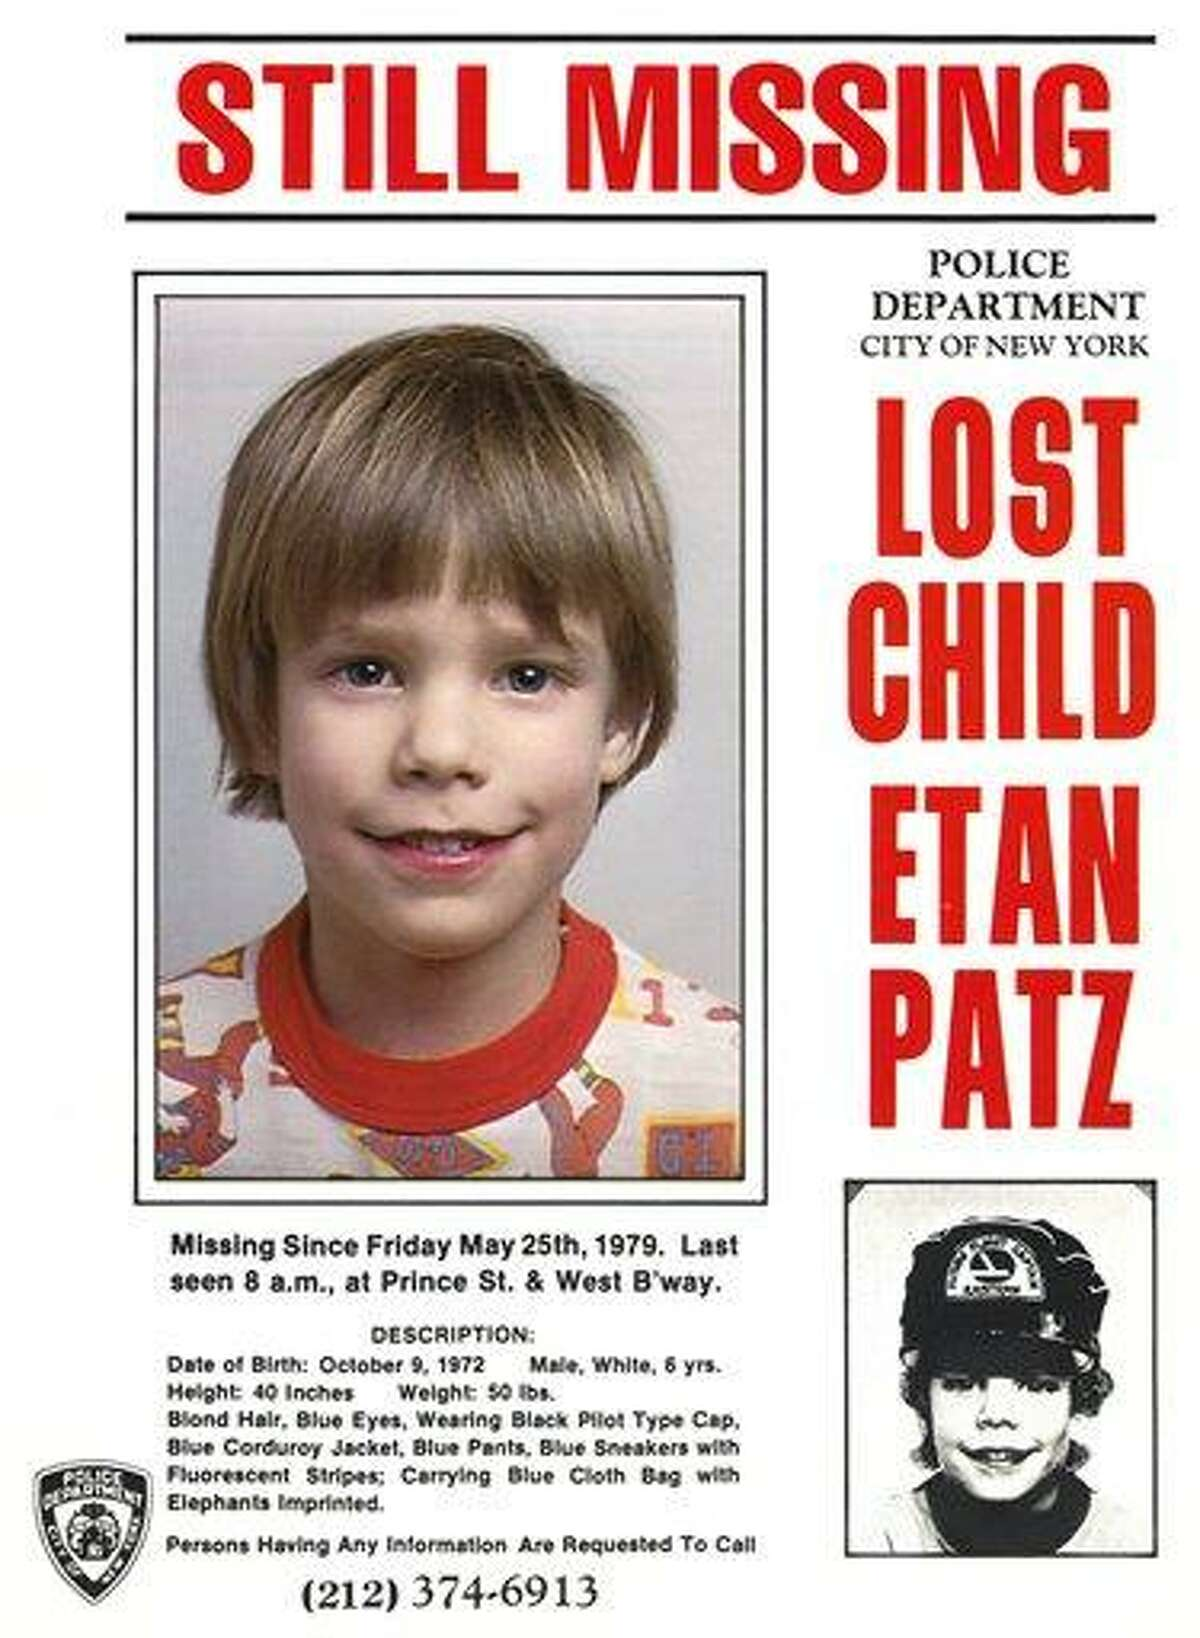 This undated file image shows a flier distributed by the New York Police Department of Etan, who vanished in New York on May 25, 1979. New York City police commissioner Raymond Kelly said Thursday that police have a suspect. Associated Press